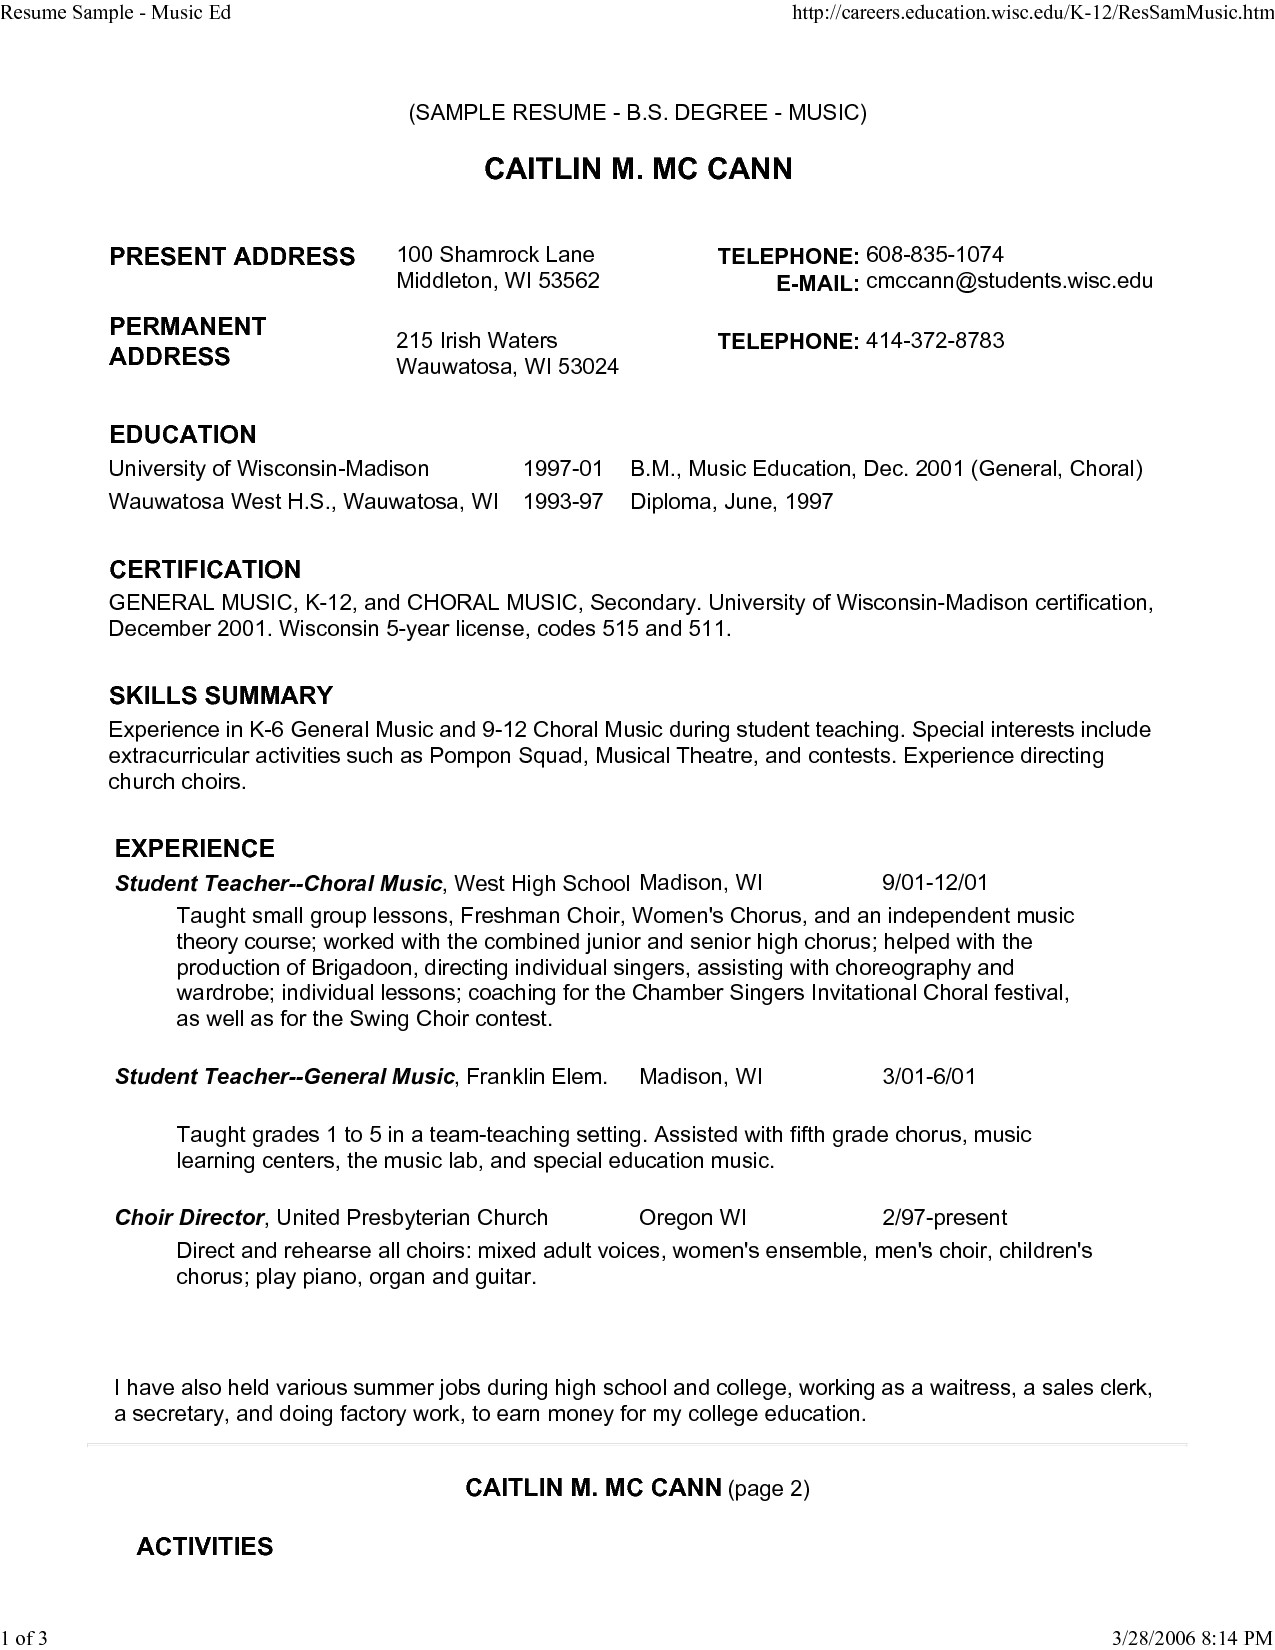 music resume for college application